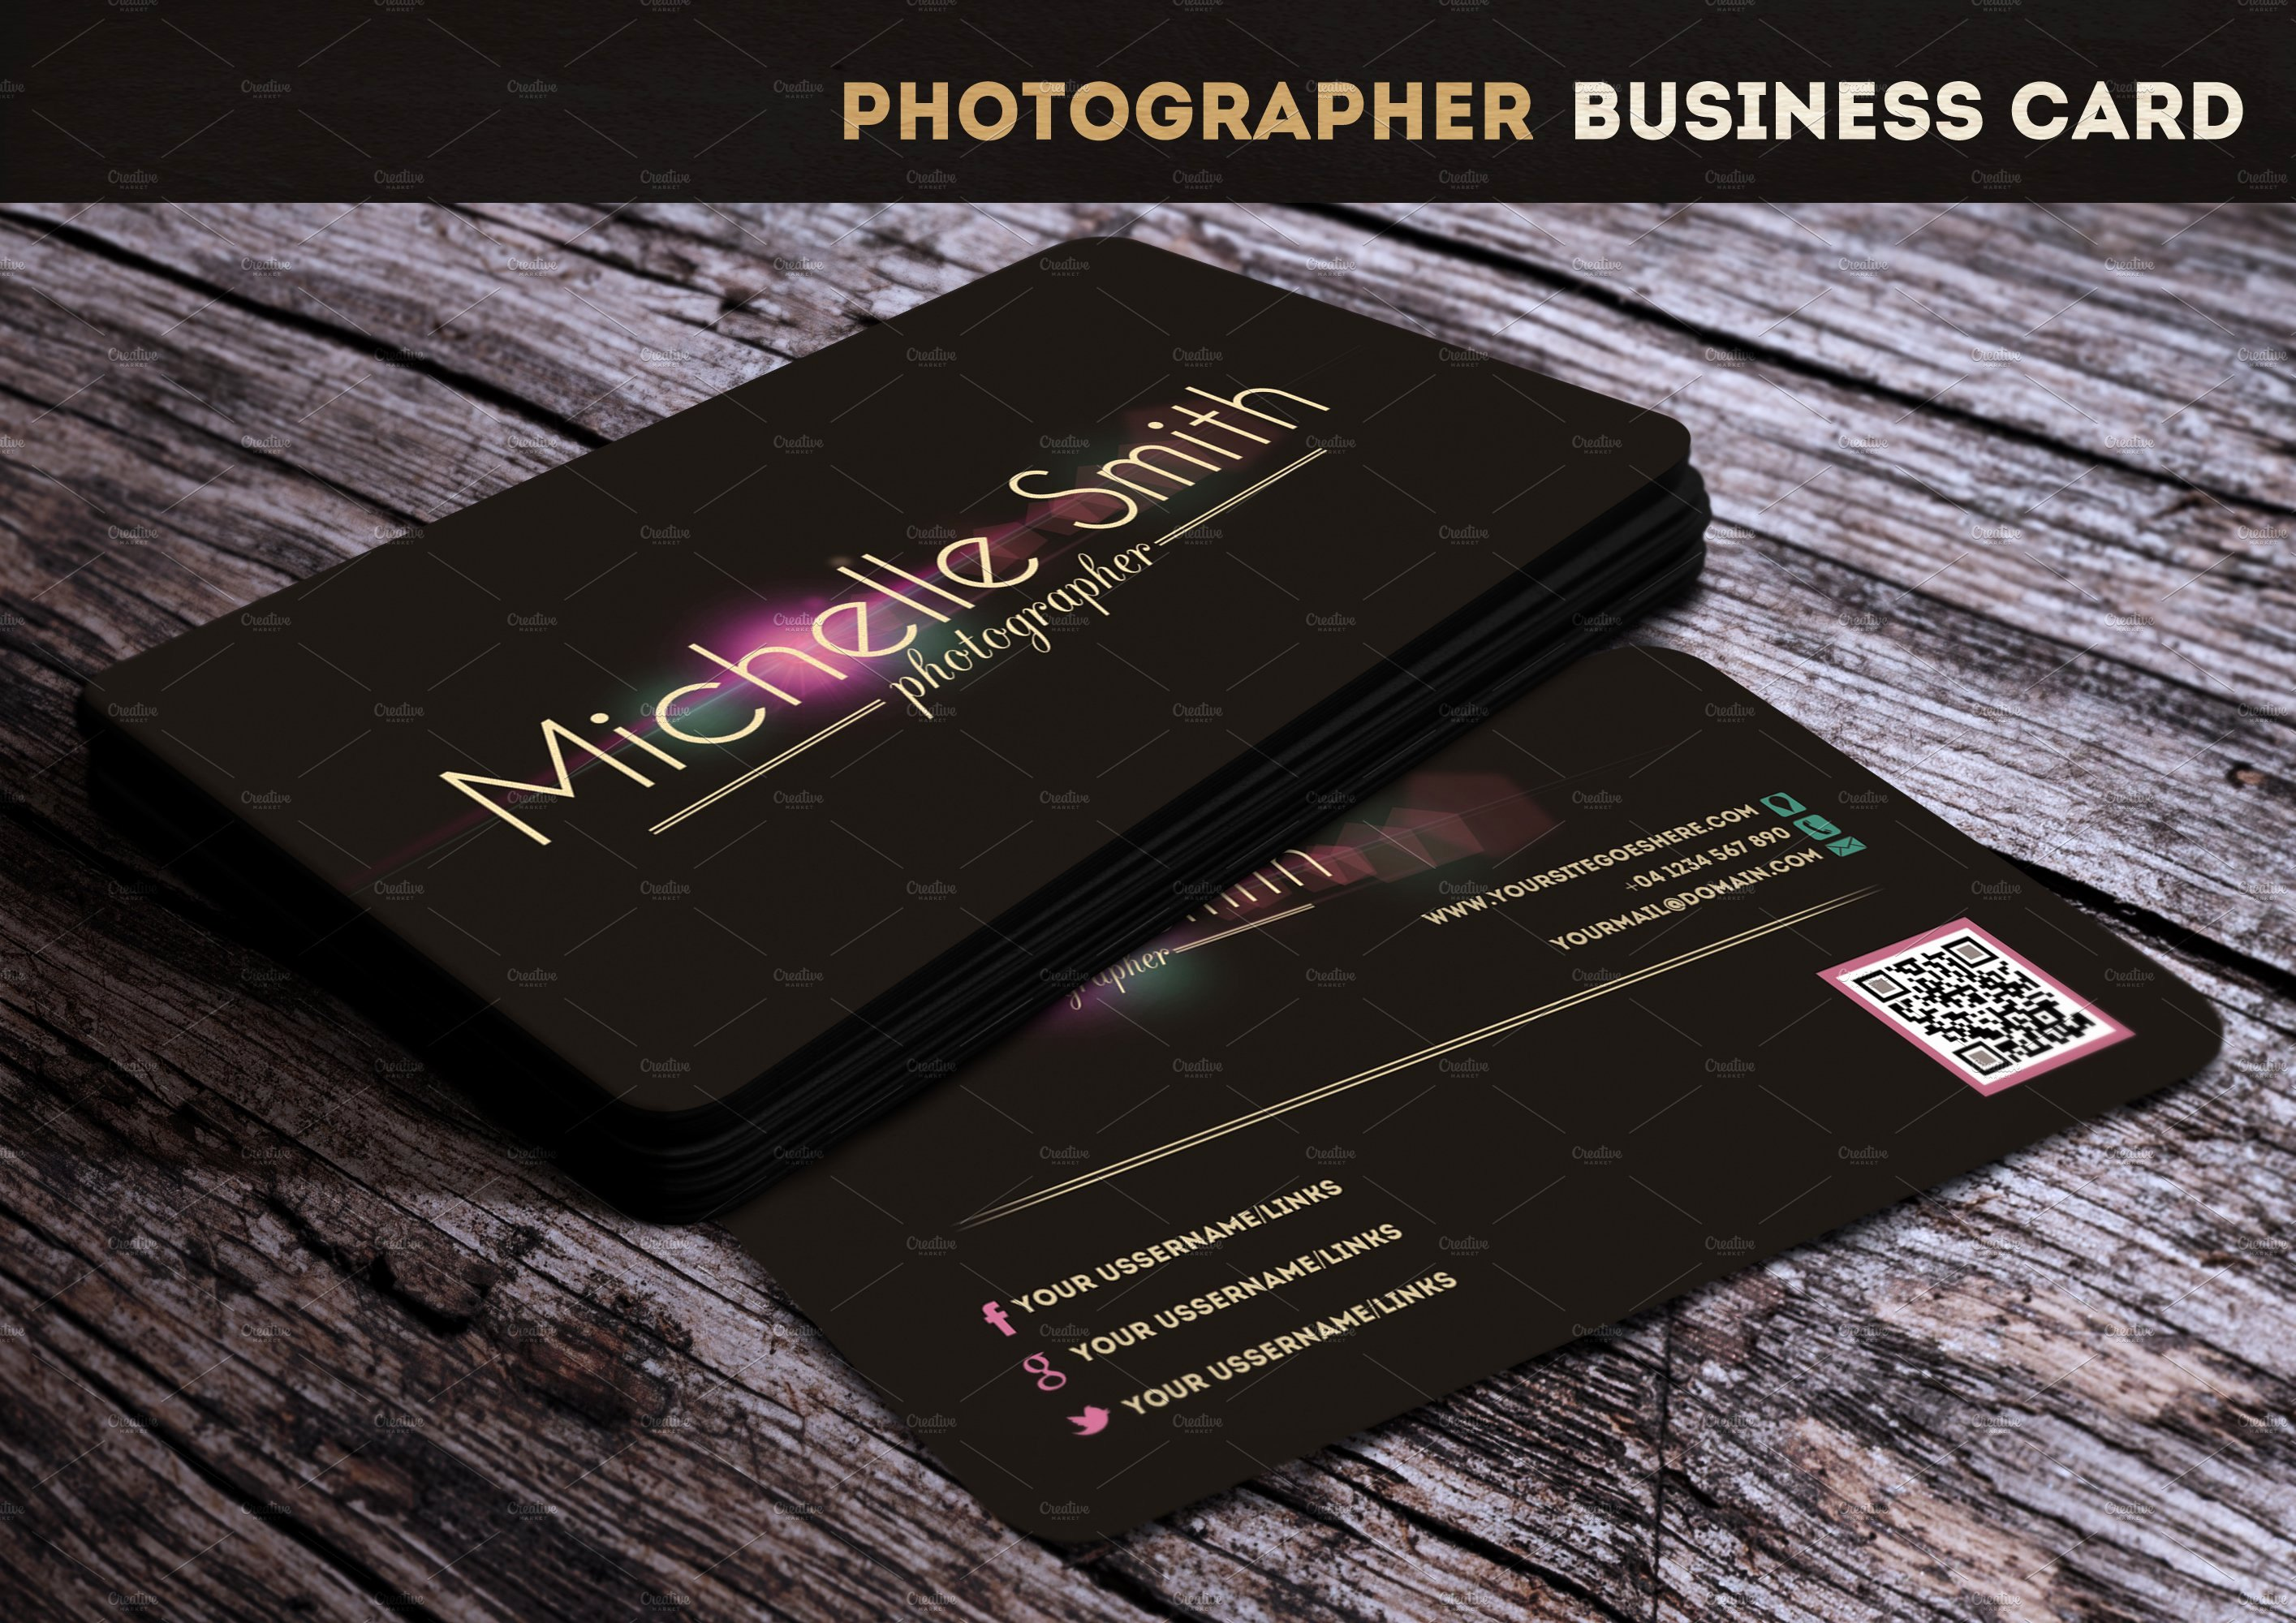 Photographer Business Card Template Unique Grapher Business Card Business Card Templates